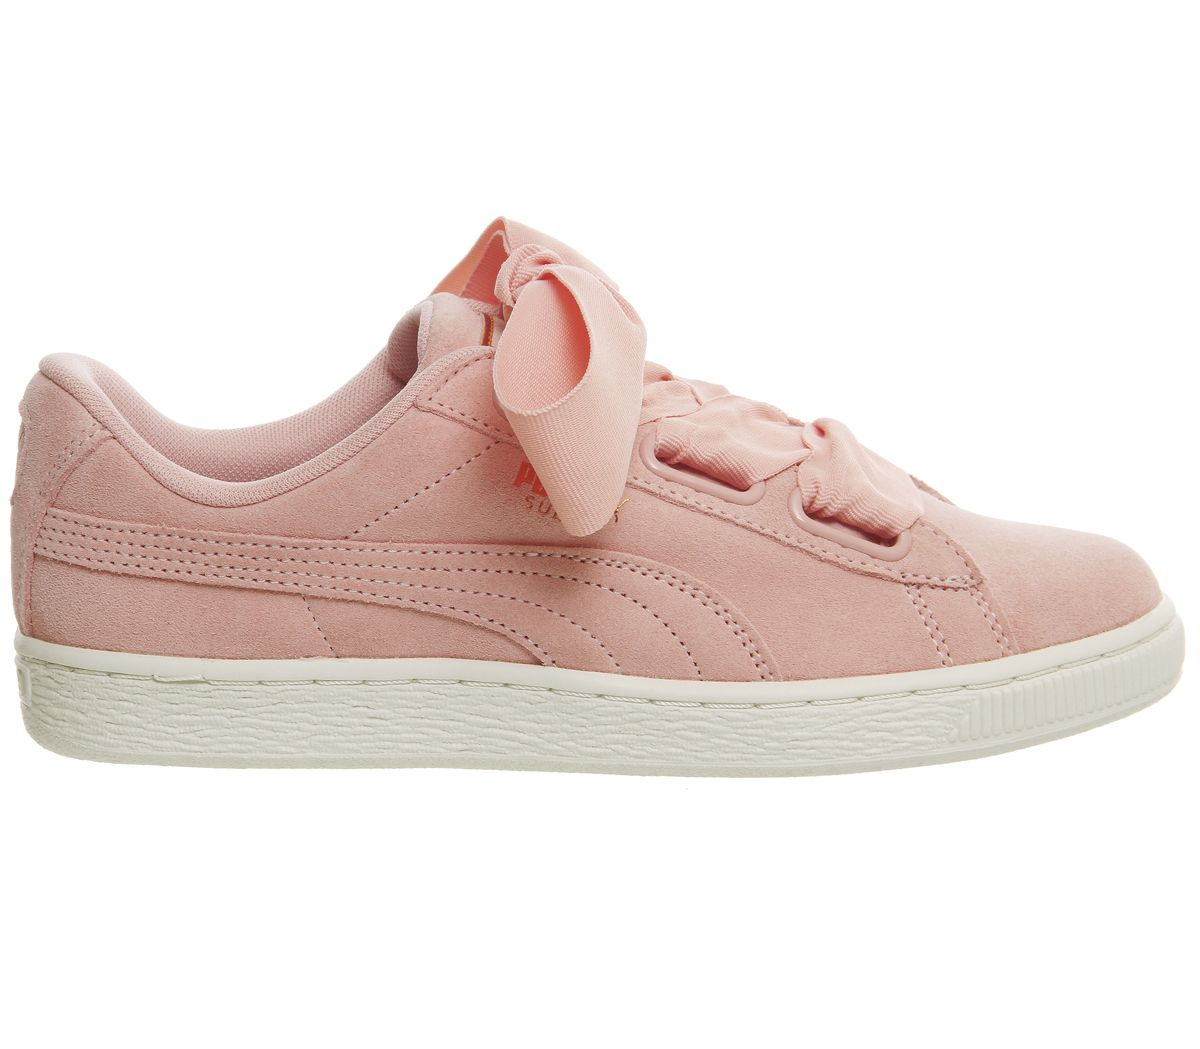 official photos d882b 5b81b Suede Heart Trainers | Shoes | Puma suede, Office shoes, Shoes